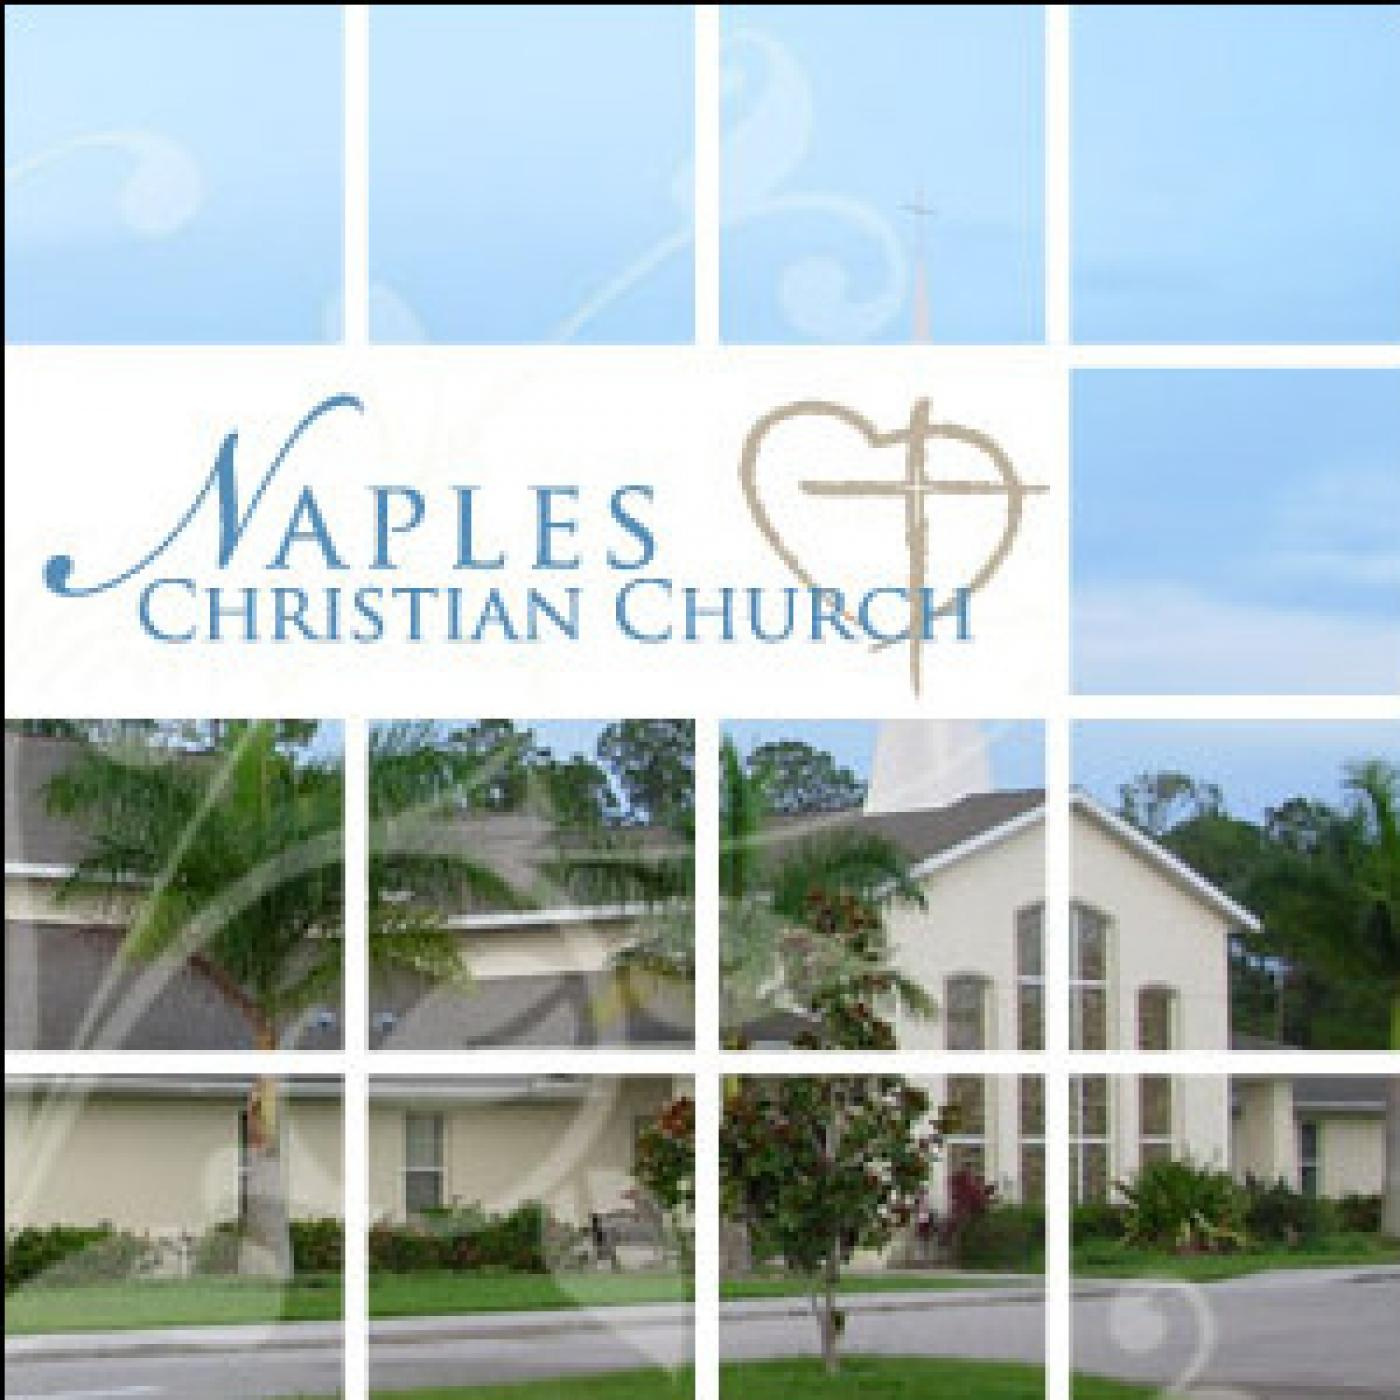 Naples Christian Church Sermons